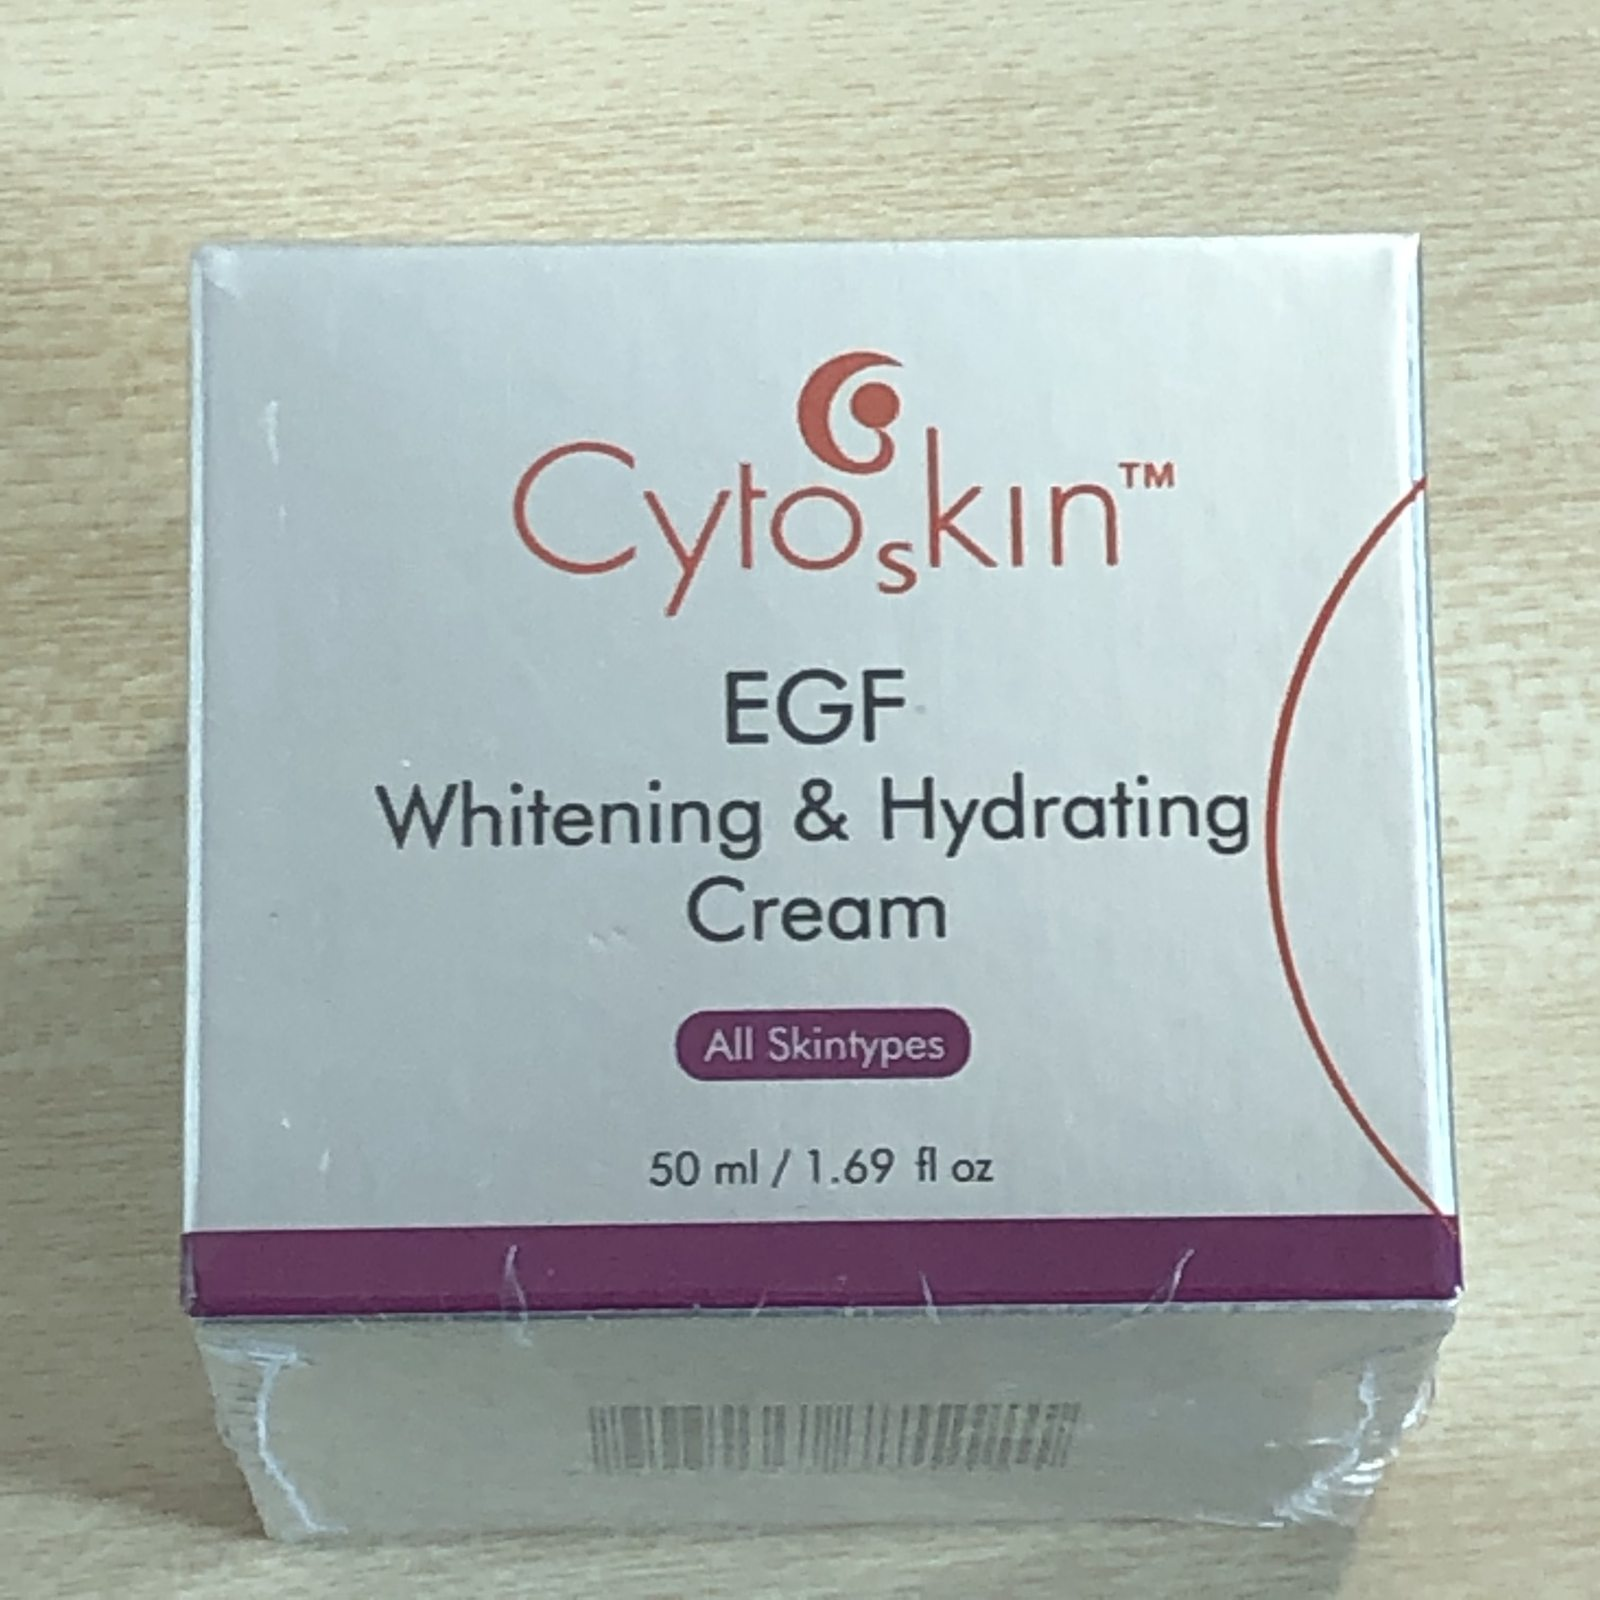 CytoSkin EGF Whitening & Hydrating Cream for Face, 50g + Free Sample